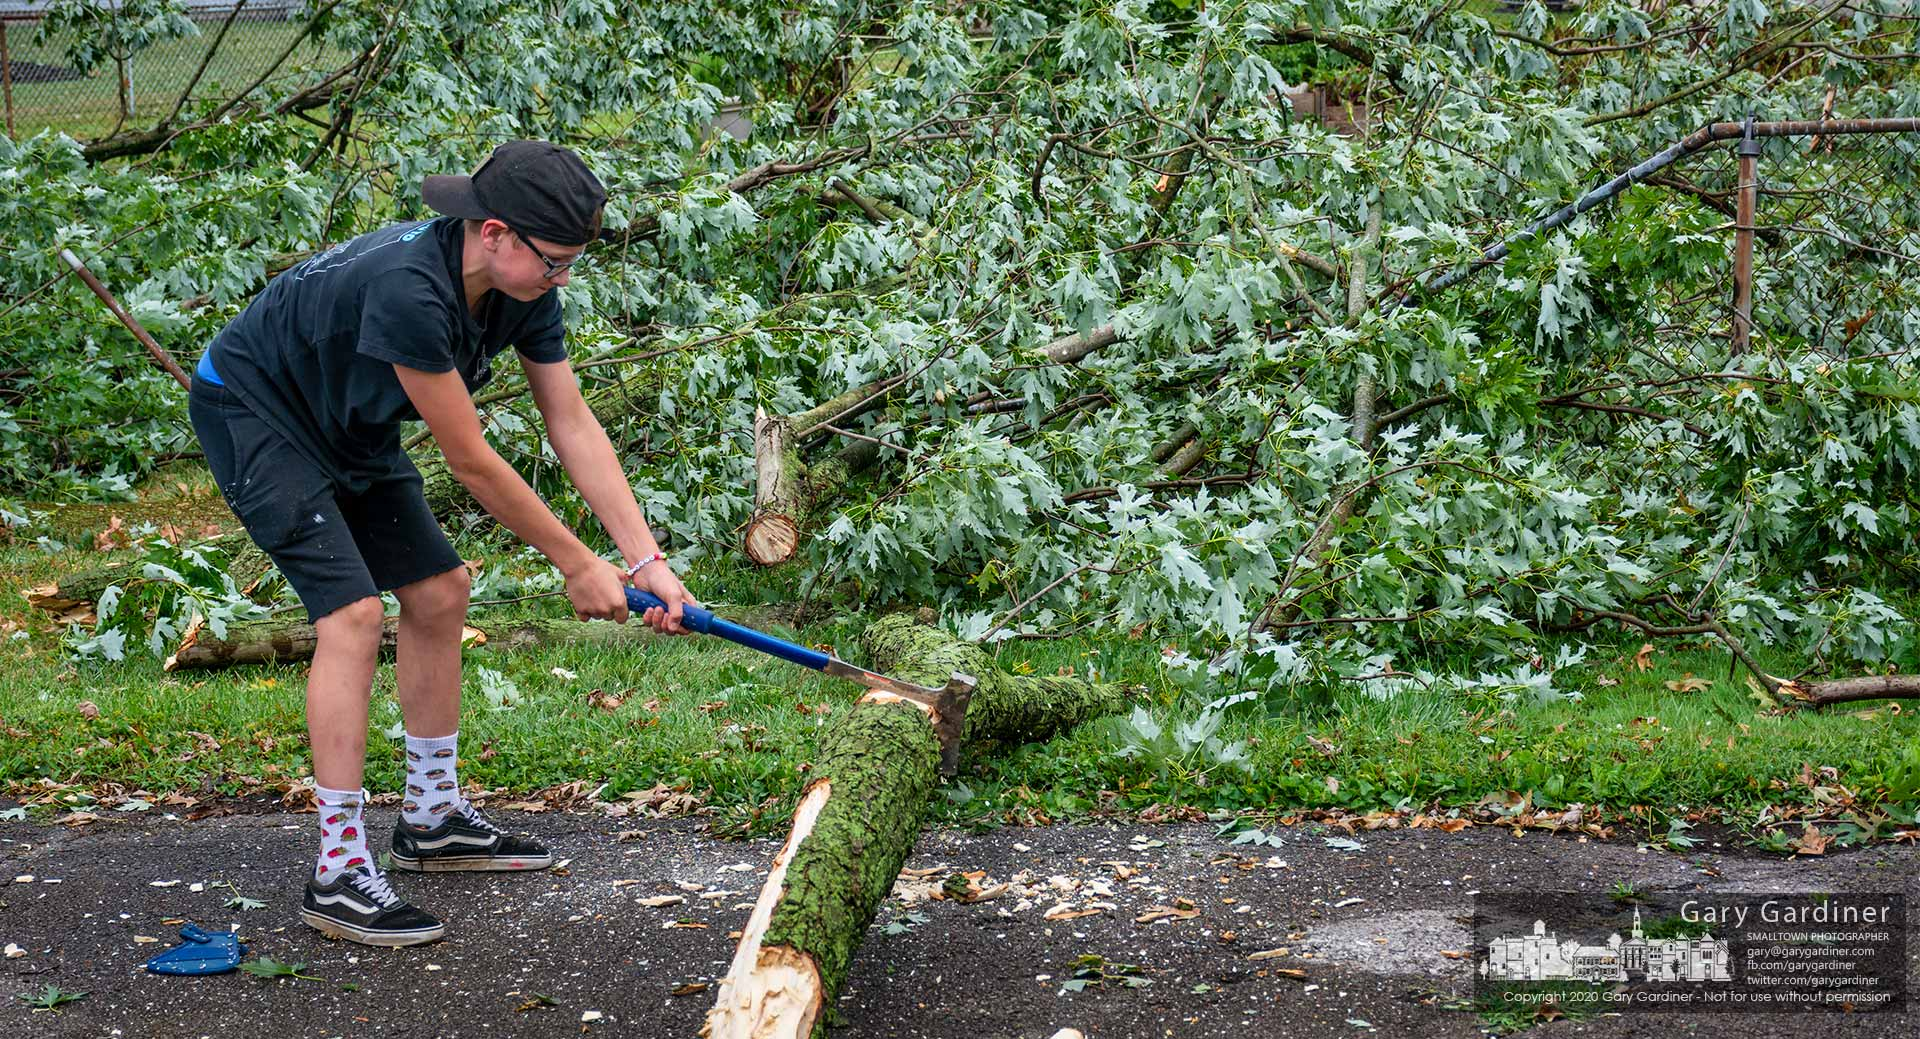 A teenager uses his family's ax to chop up sections of the silver maple tree that fell in their back yard and neighbors smashing a chain-link fence with little damage to other structures. My Final Photo for August 28, 2020.